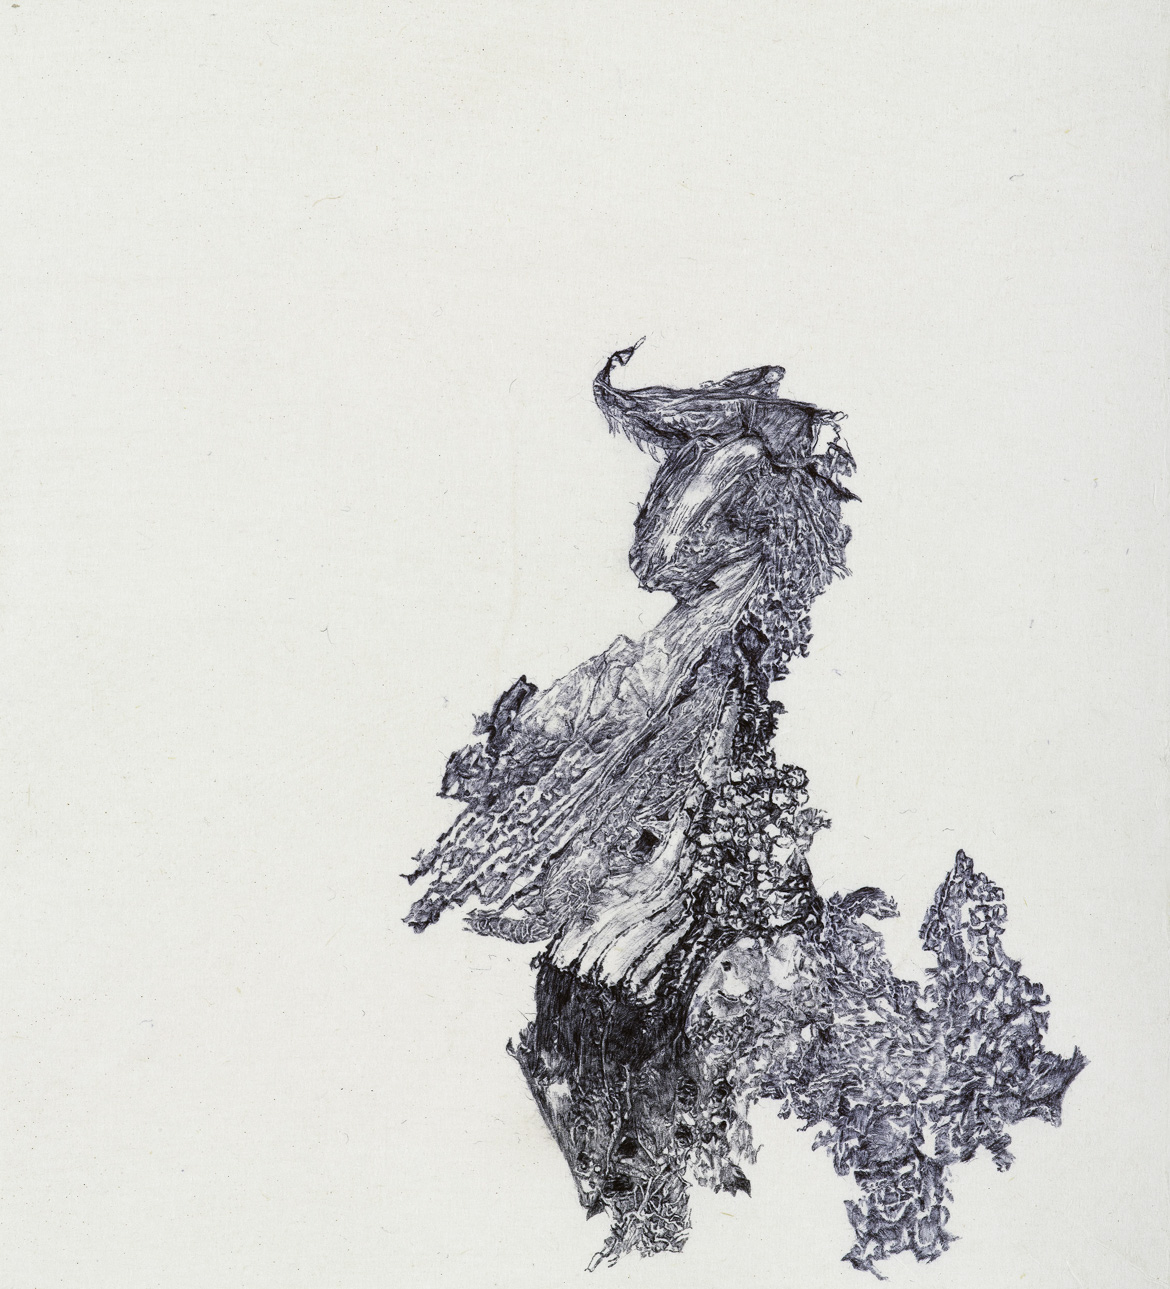 a moment of truth 22, ball pen on paper, 33cm (height) x 32cm (width), 2013